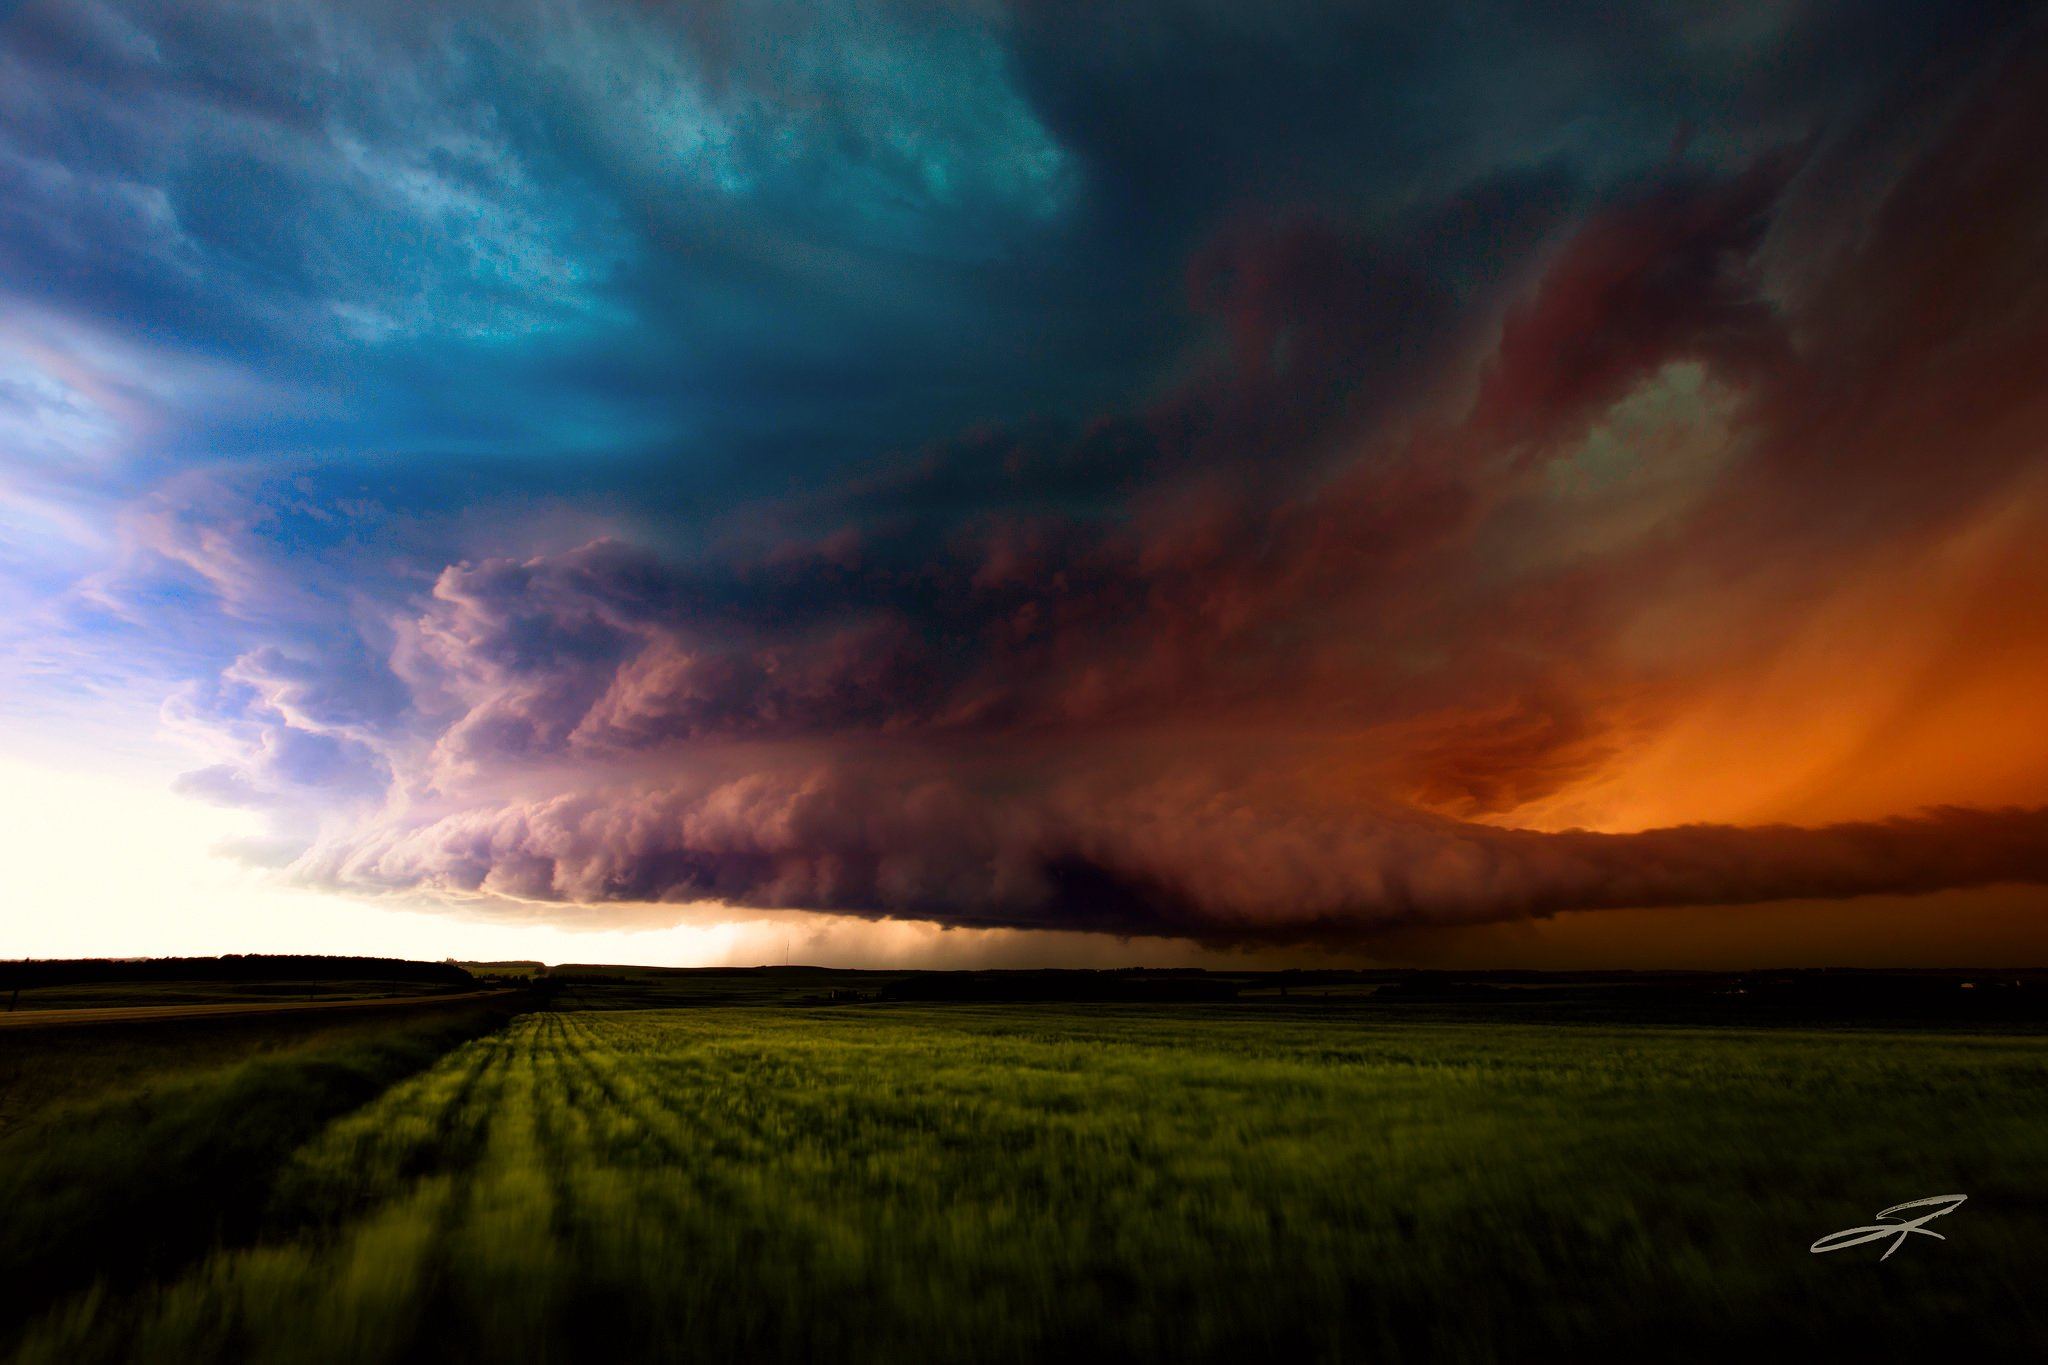 Storm Clouds Wallpapers: Canada Alberta Canada Storm Sky Clouds Field Grass Nature